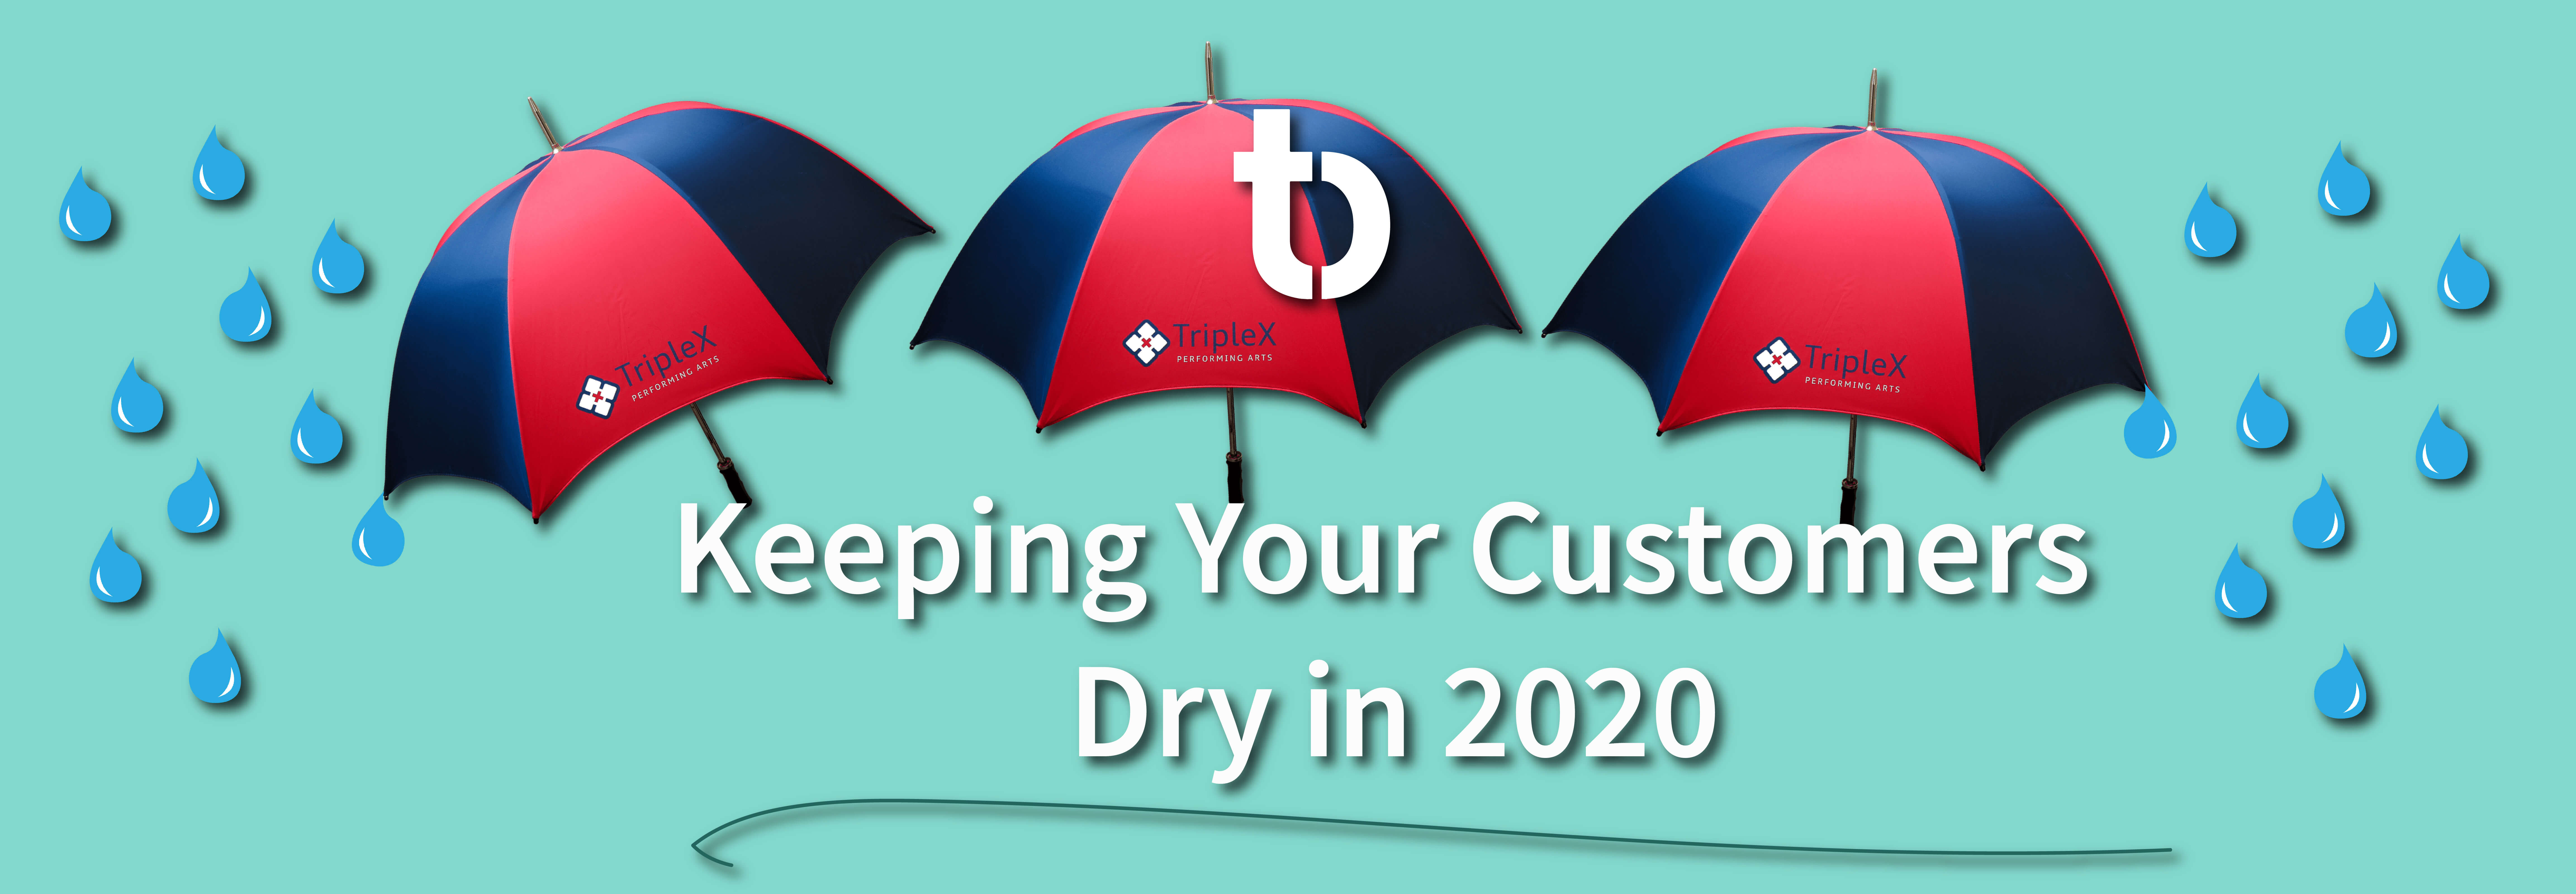 Keeping Your Customers Dry in 2020 - Totally Branded Blogs